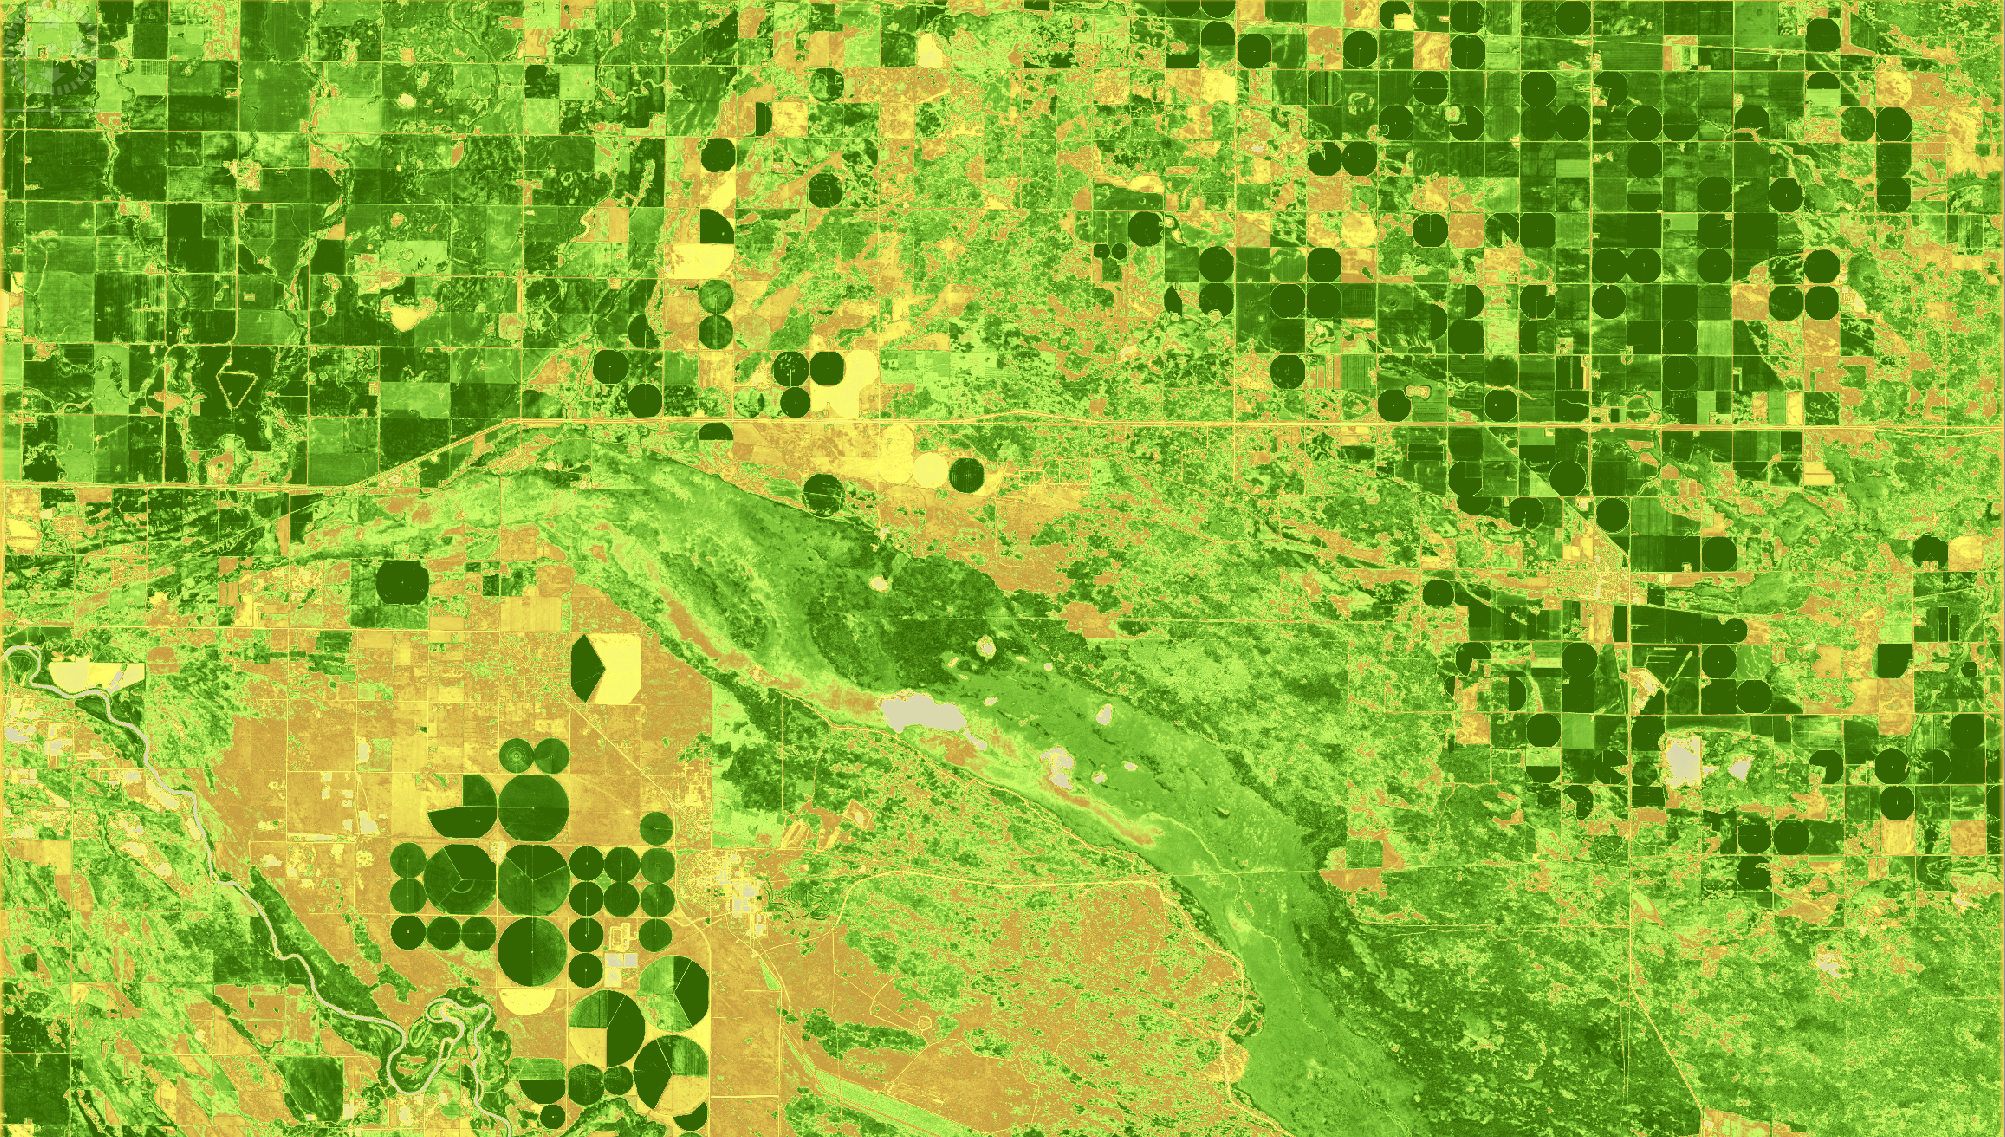 Normalized Difference Vegetation Index (NDVI) at 10 m resolution near Brandon, MB, July 23, 2017. Copyright: contains modified ESA data.